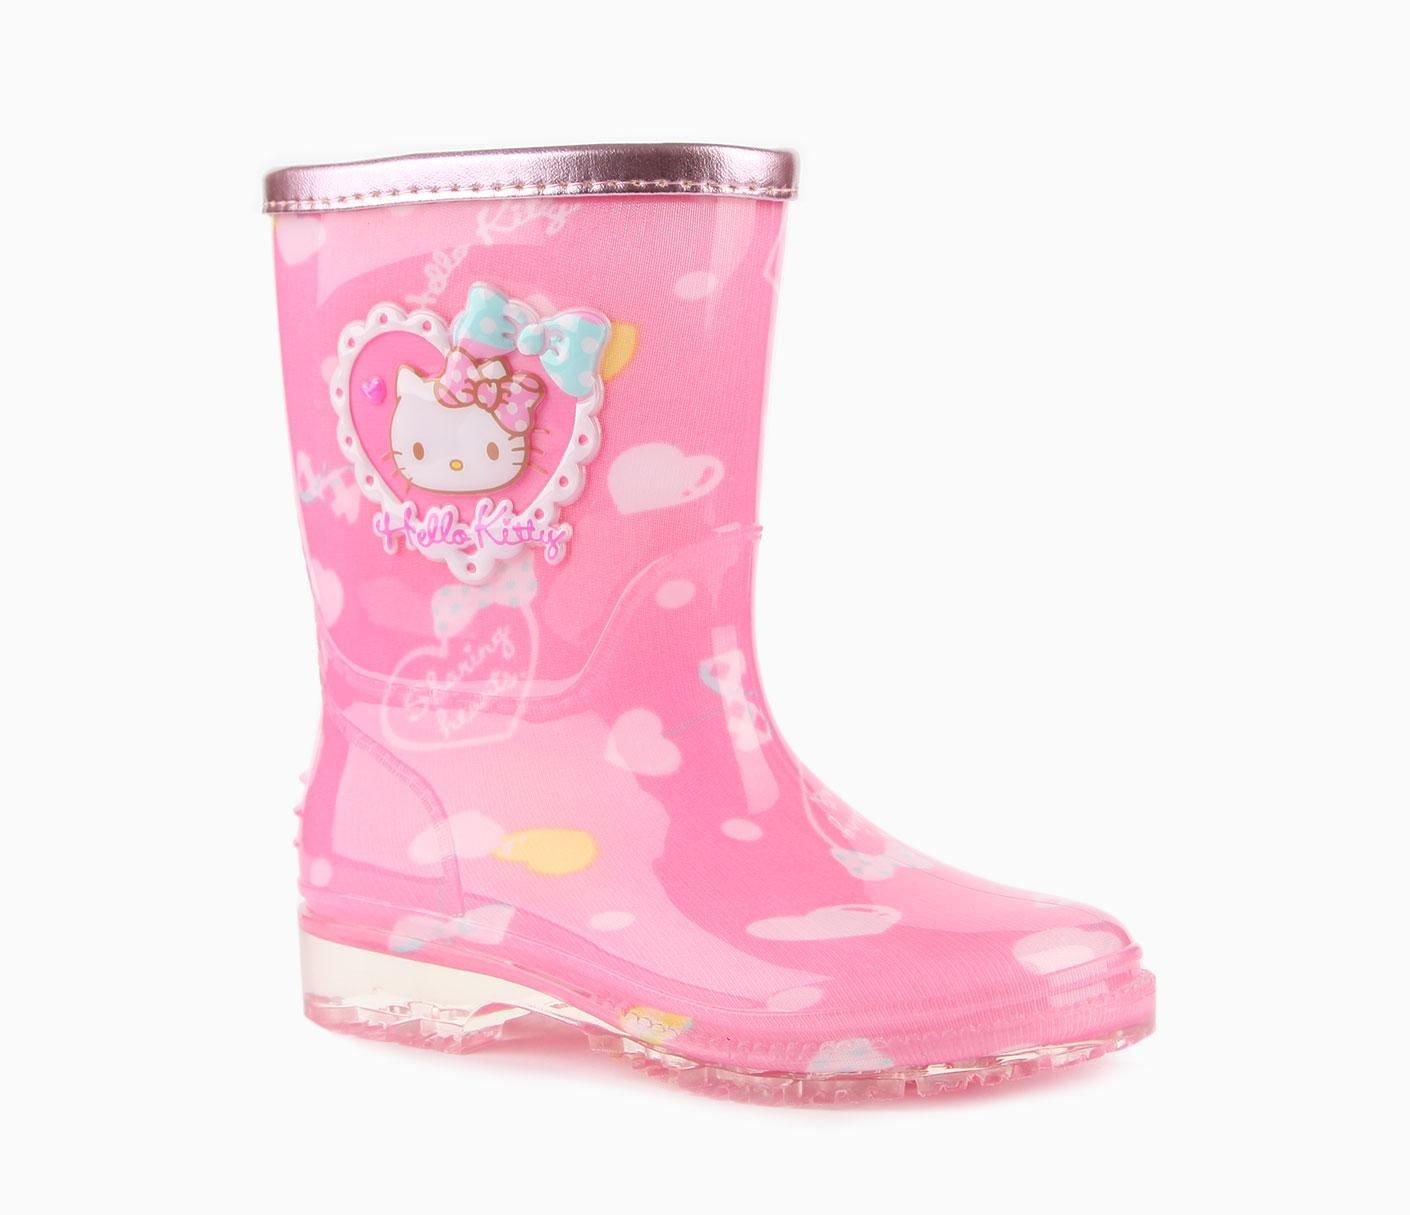 Sanrio Hello Kitty Rain Boots: Sharing Hearts | Fab Fashion For ...